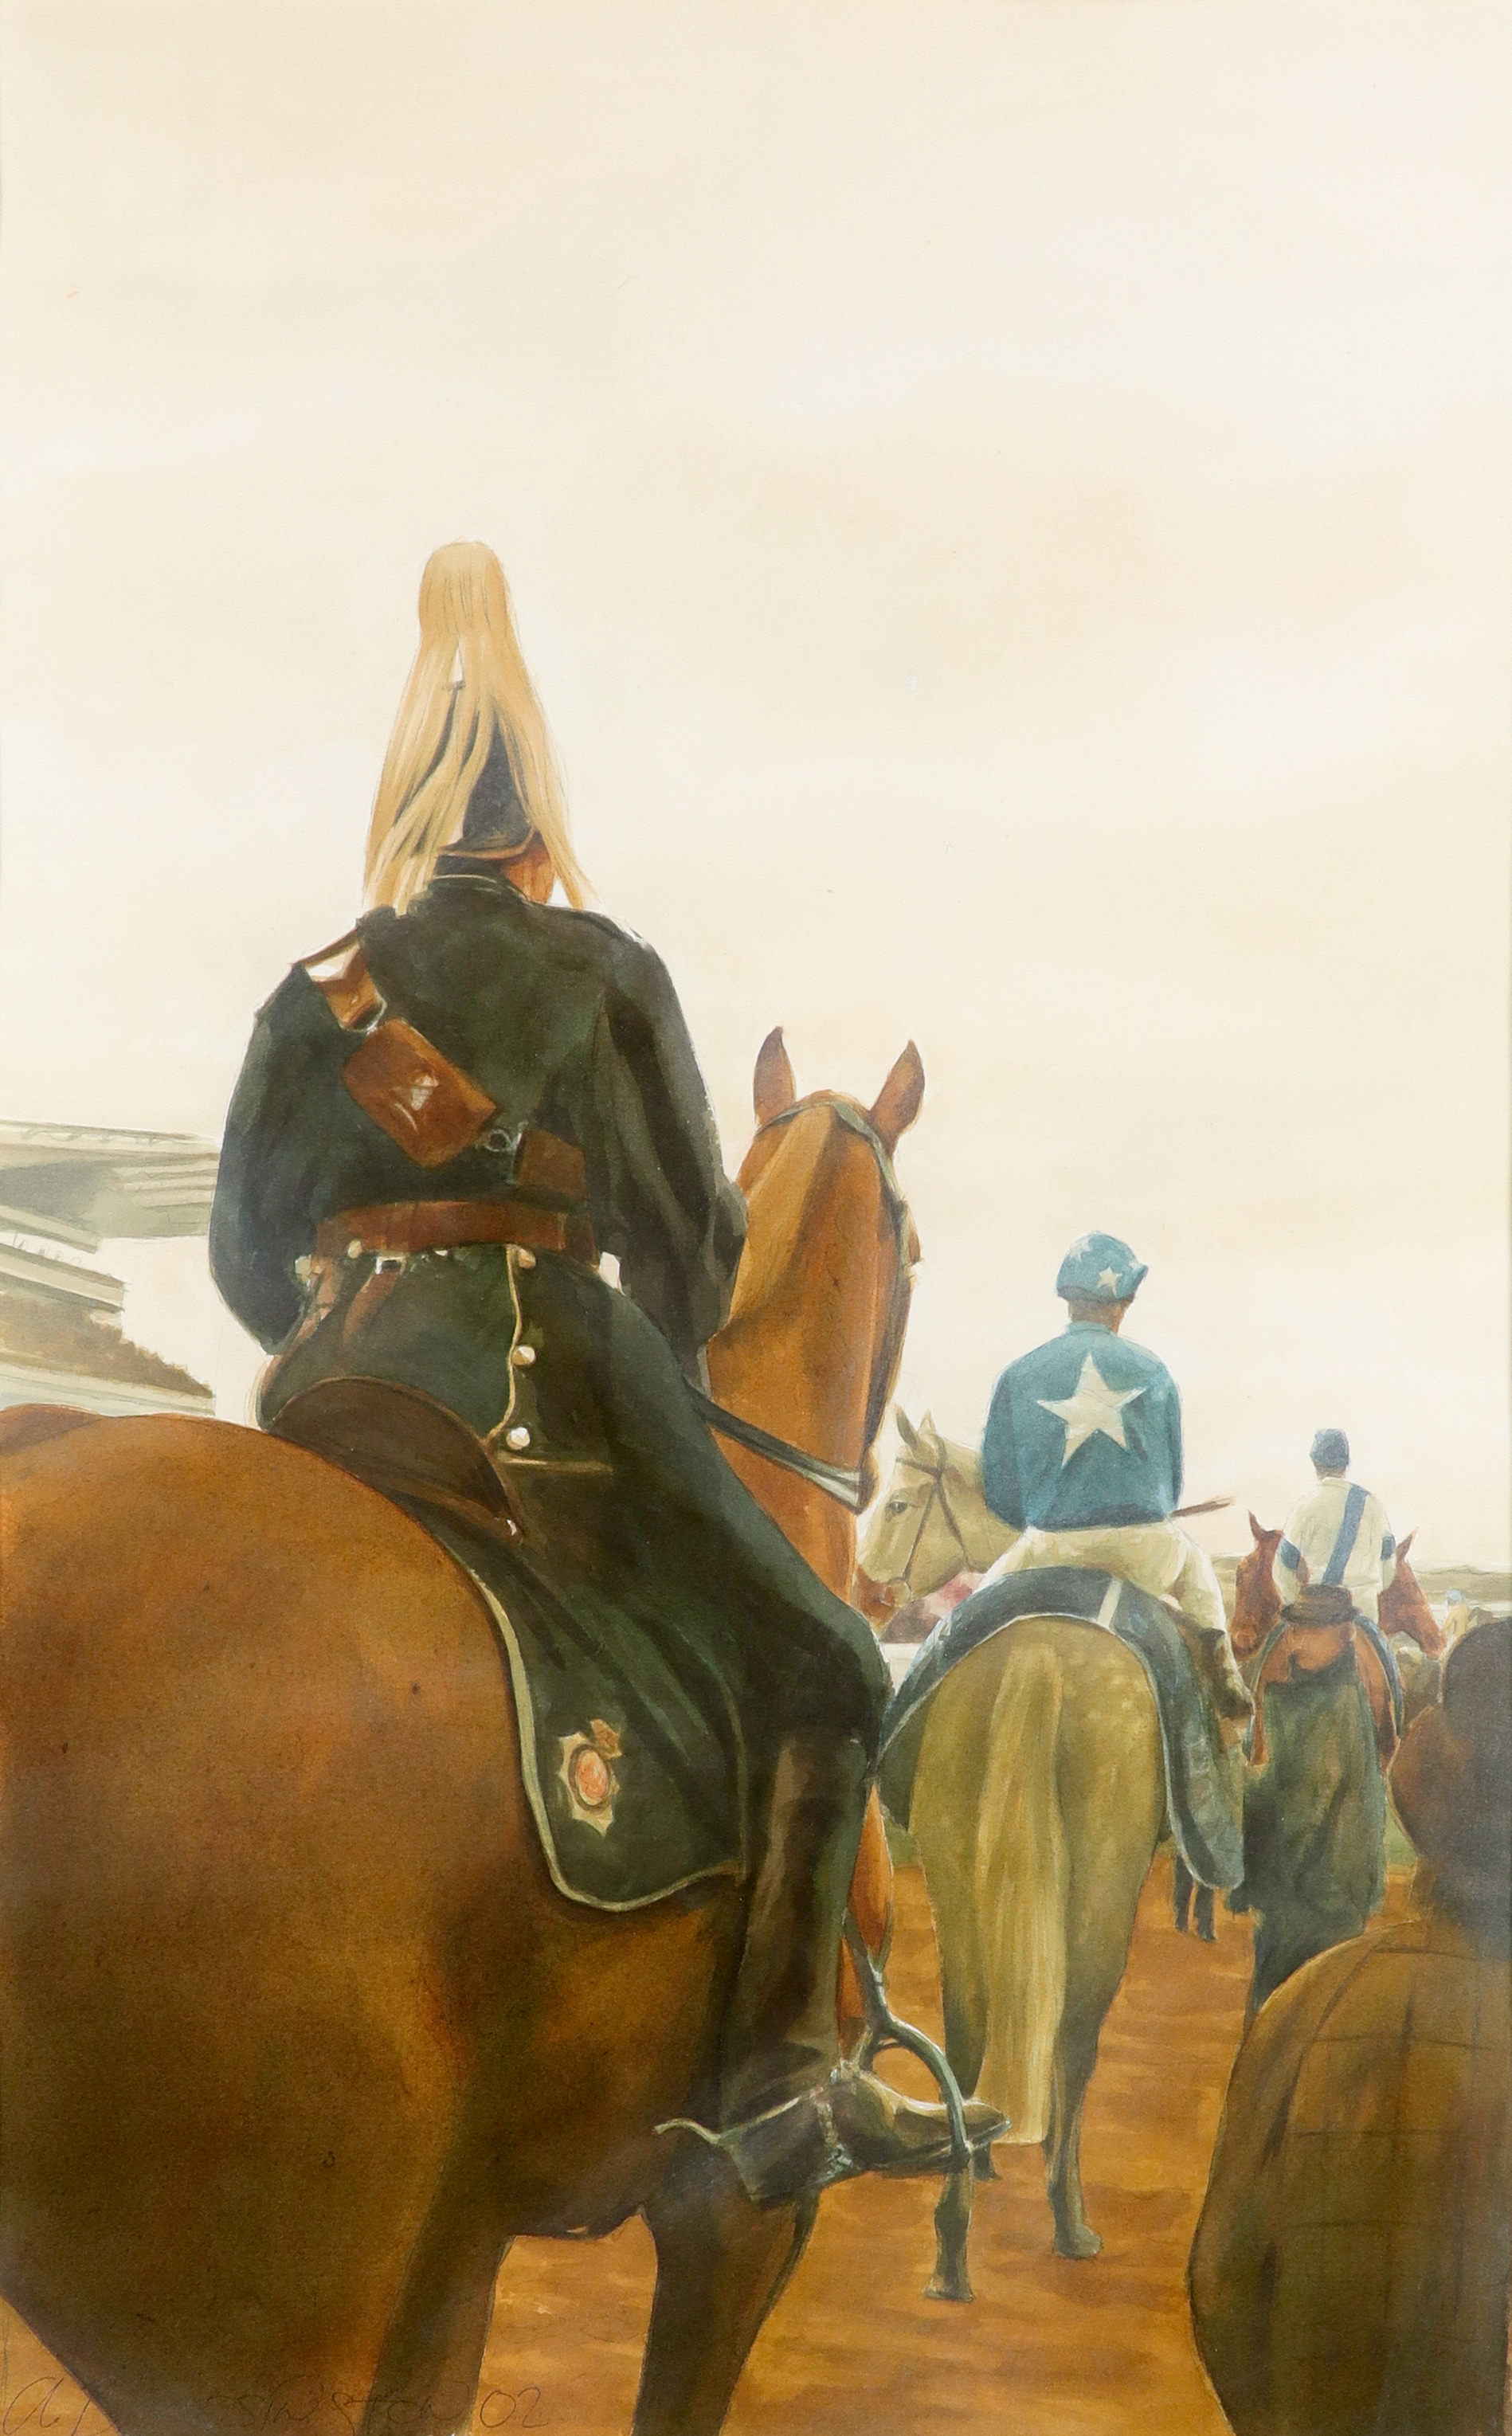 ‡Alan Brassington (Irish b.1959) Before the Grand National Signed and dated a. BRASSINGTON 02 (lower